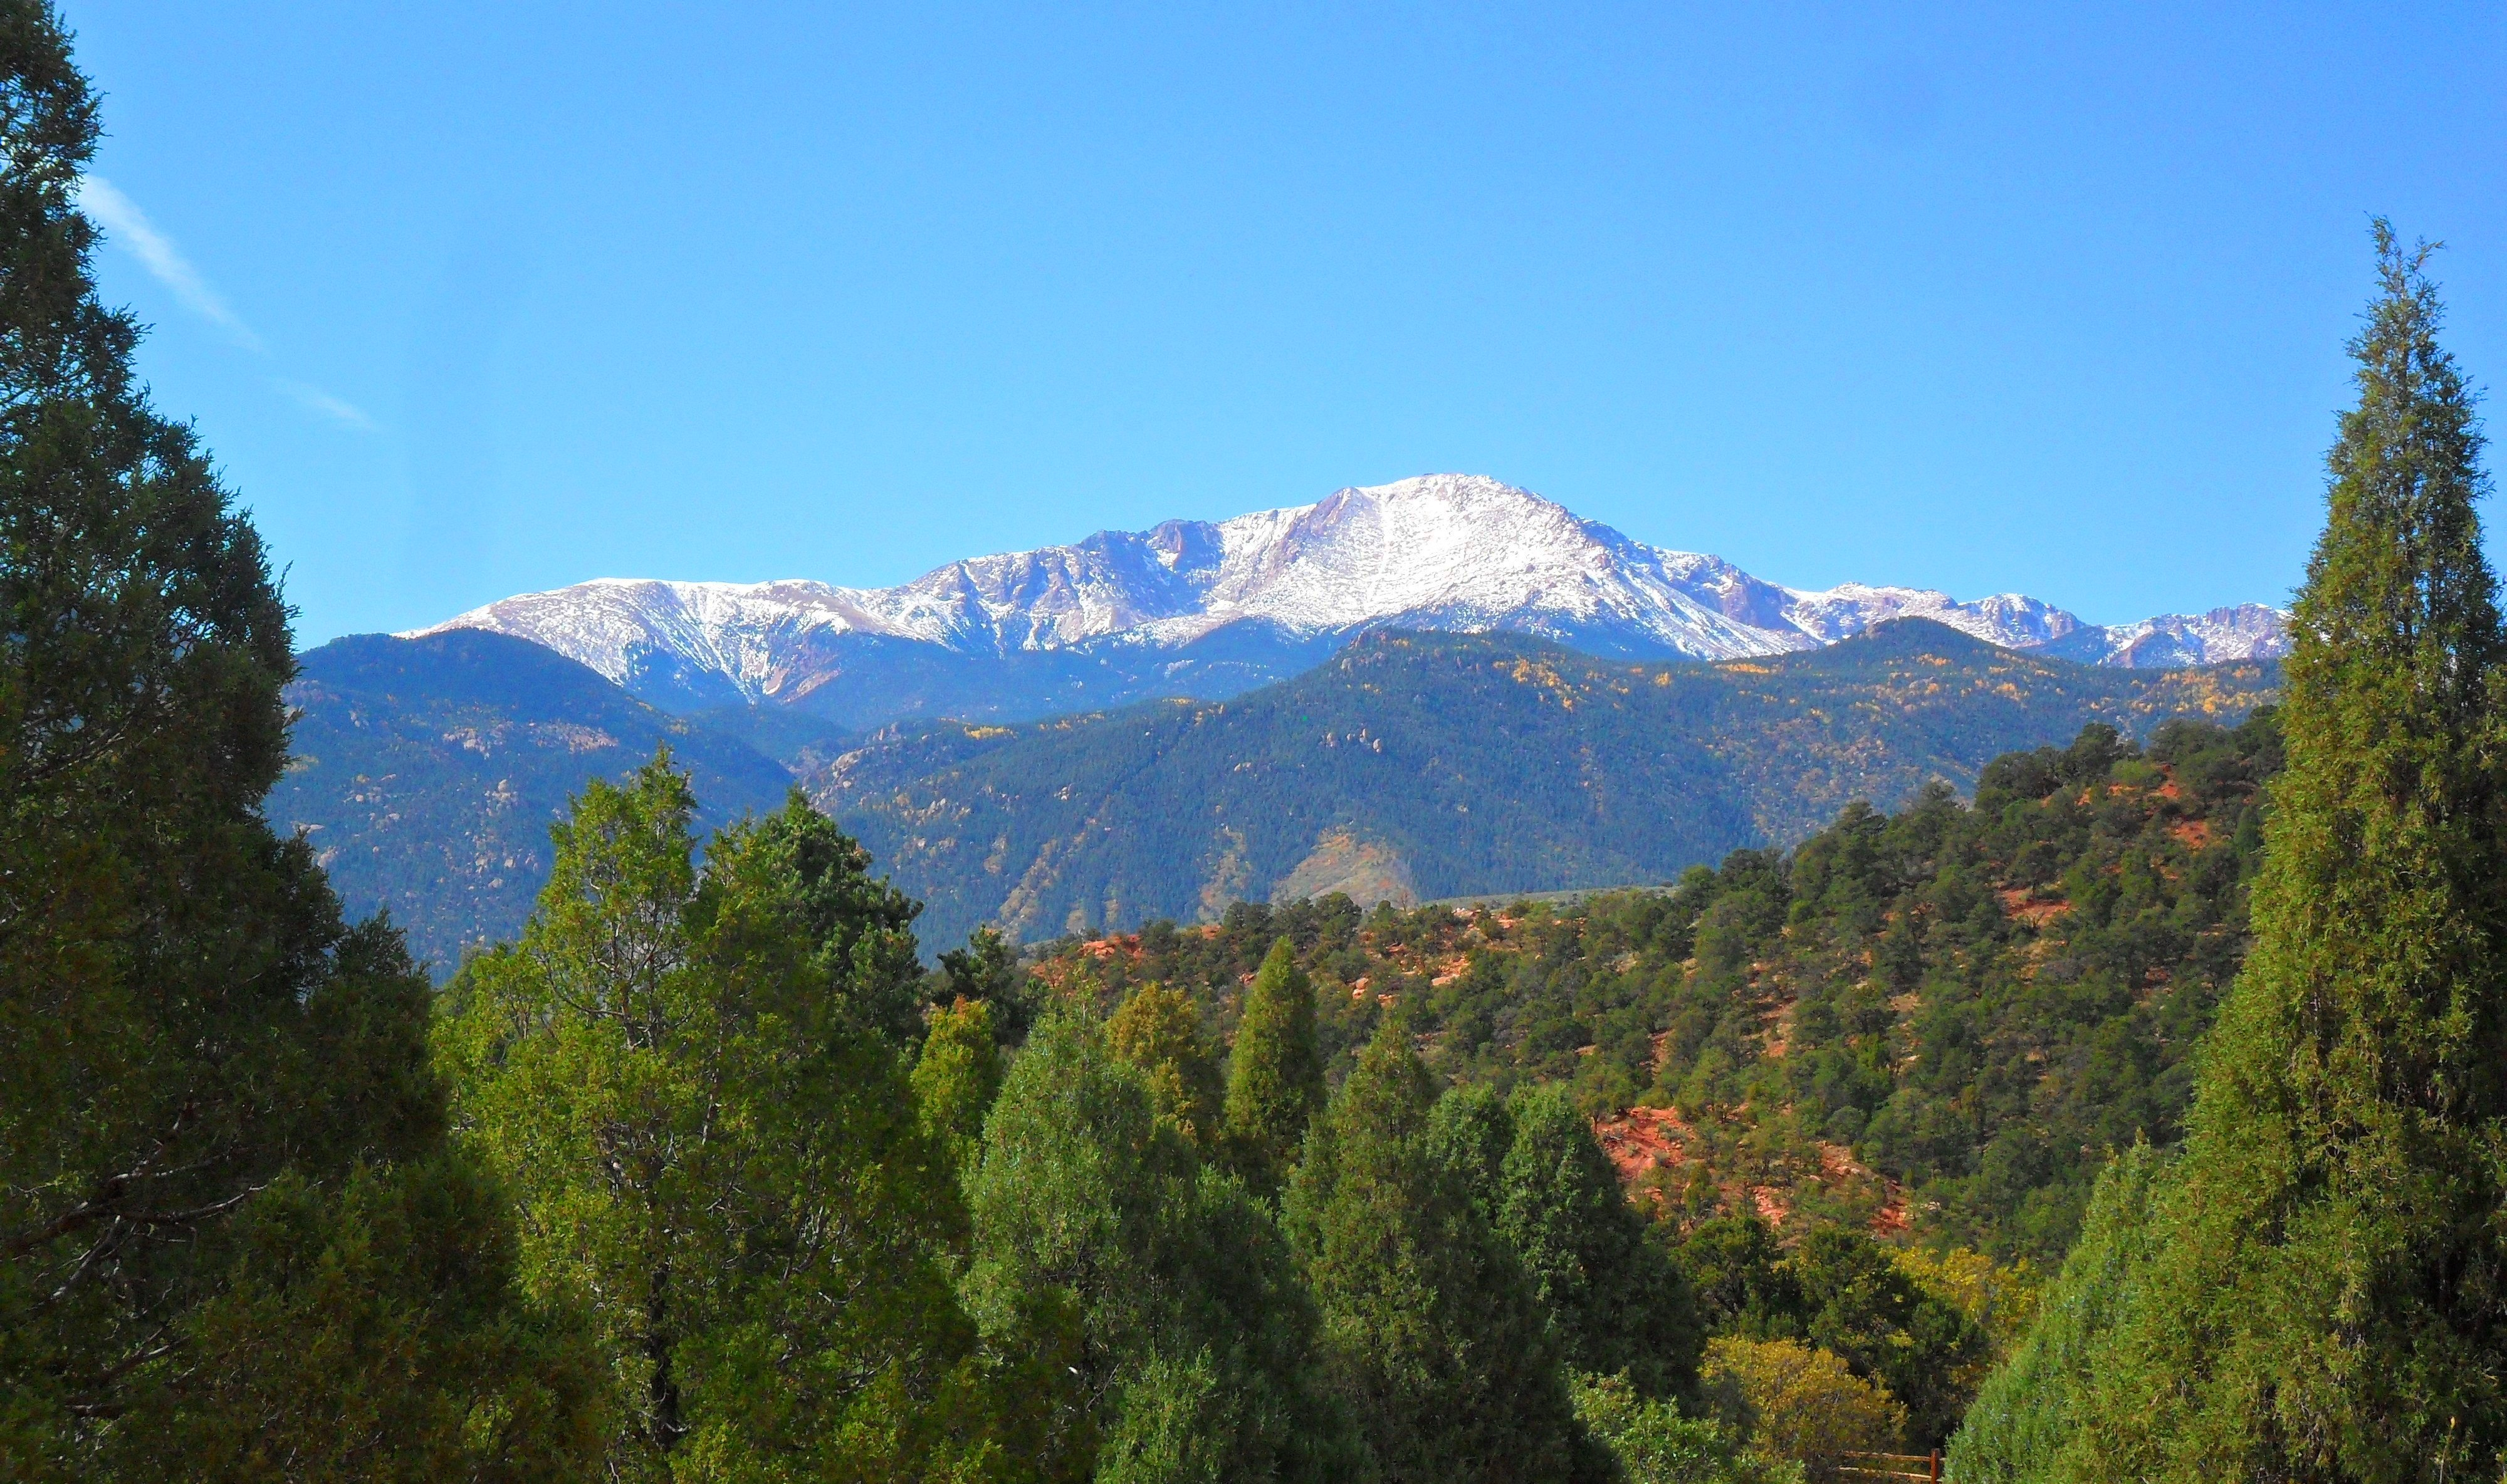 Pikes Peak_Colorado Springs_Fort Carson_What Things to Do.jpg